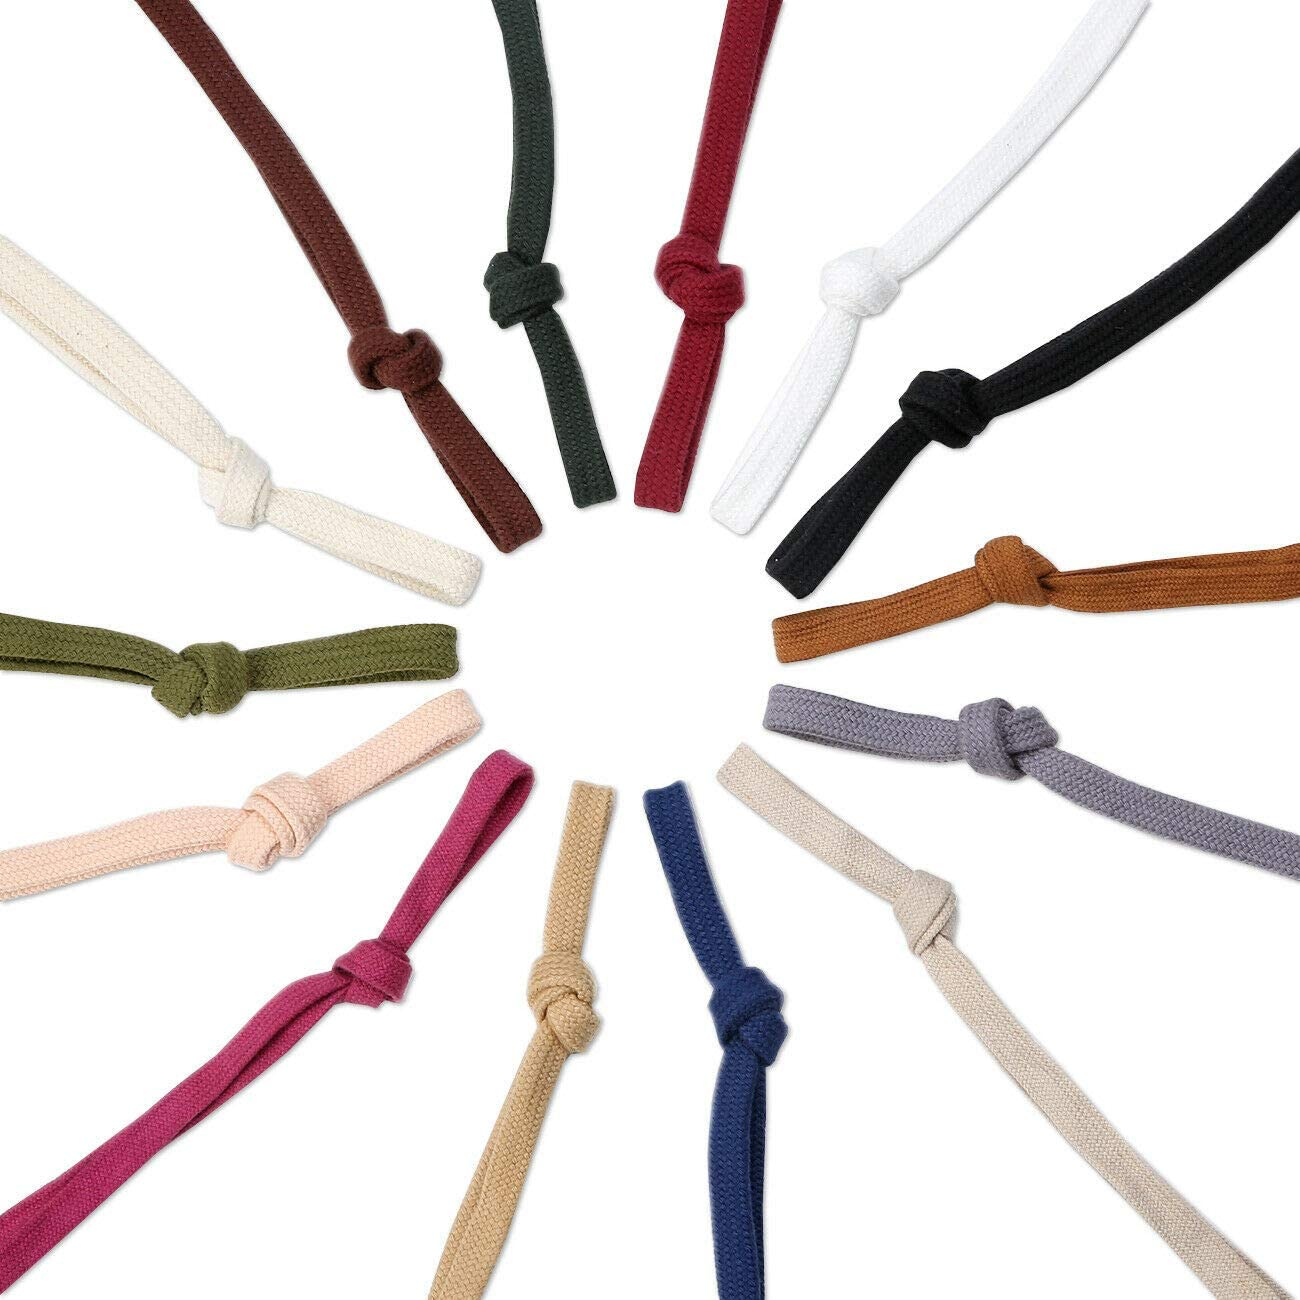 26 Colours 25mts and 45mts Rolls 5mts 1mt Sweatshirt Hoodie Flat Cotton Tape Ribbon Cord Rope,10 /& 15mm,Garment Hoody Drawstring Colours Match Neotrims Flanged 12mm Piping and 6mm Round Cord